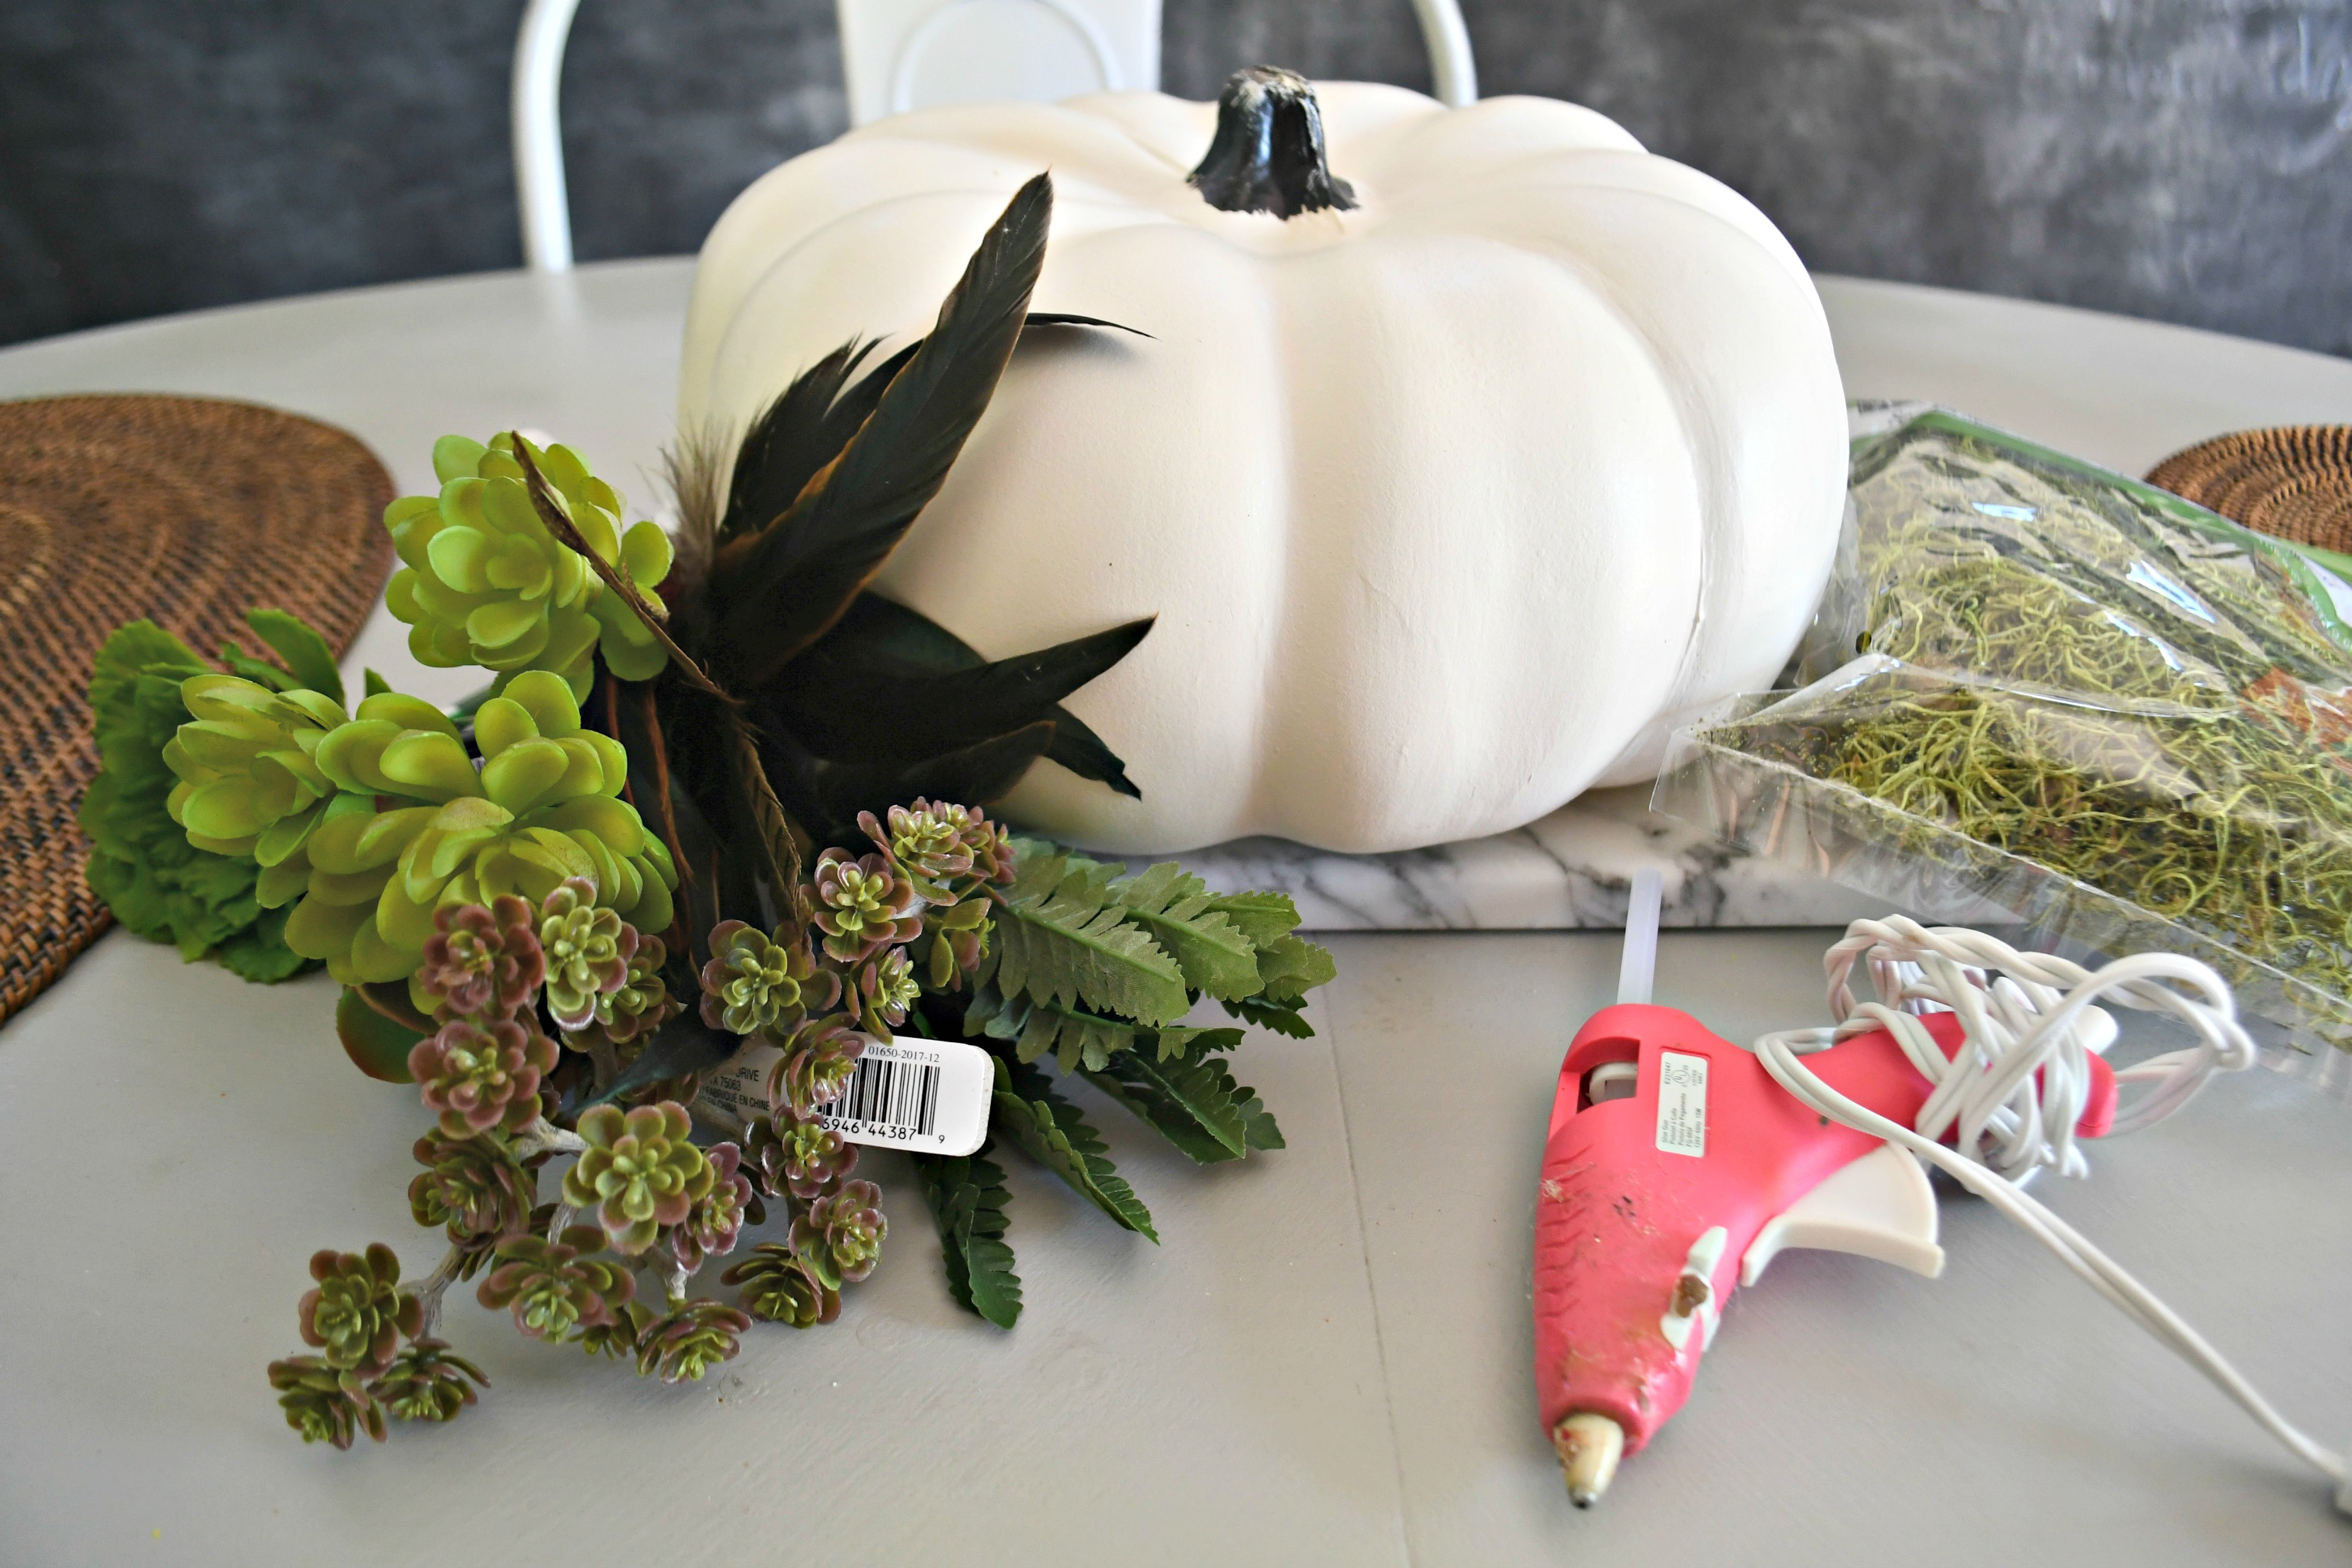 style your fall table with this DIY succulent centerpiece idea - here, the supplies needed for the pumpkin